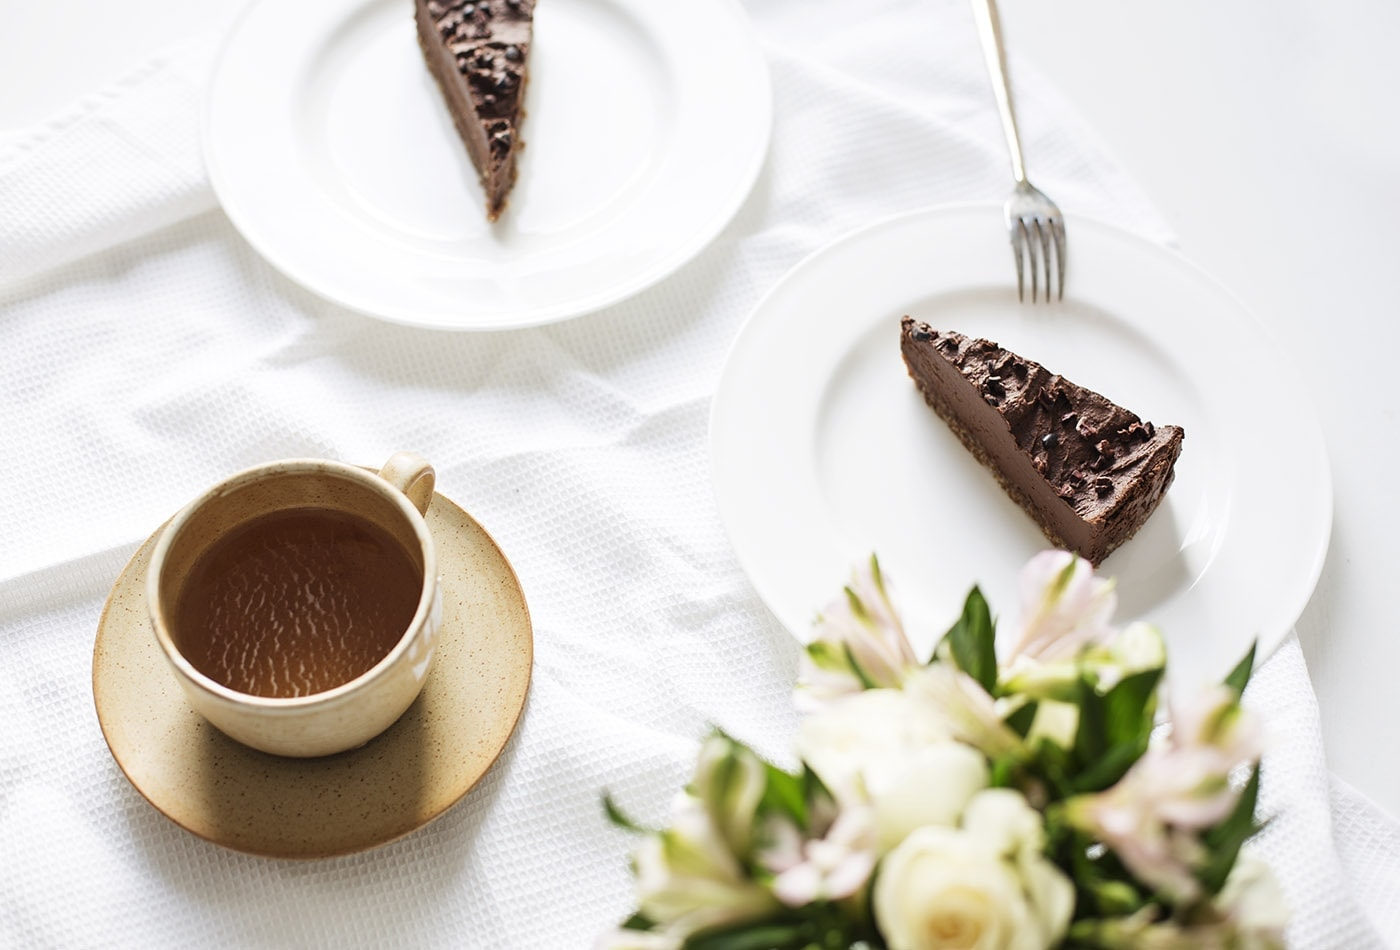 raw-avocado-chocolate-tart-recipe-paleo-dessert-idea-gluten-free-dairy-free-healthier-sweet-treats